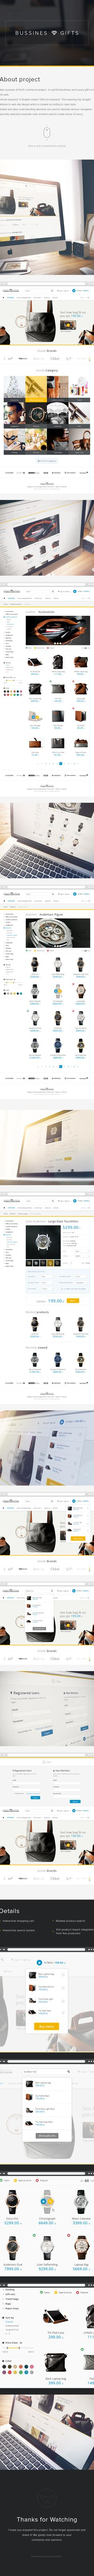 "E-Site ""Business Gifts"" Web Design on Behance"